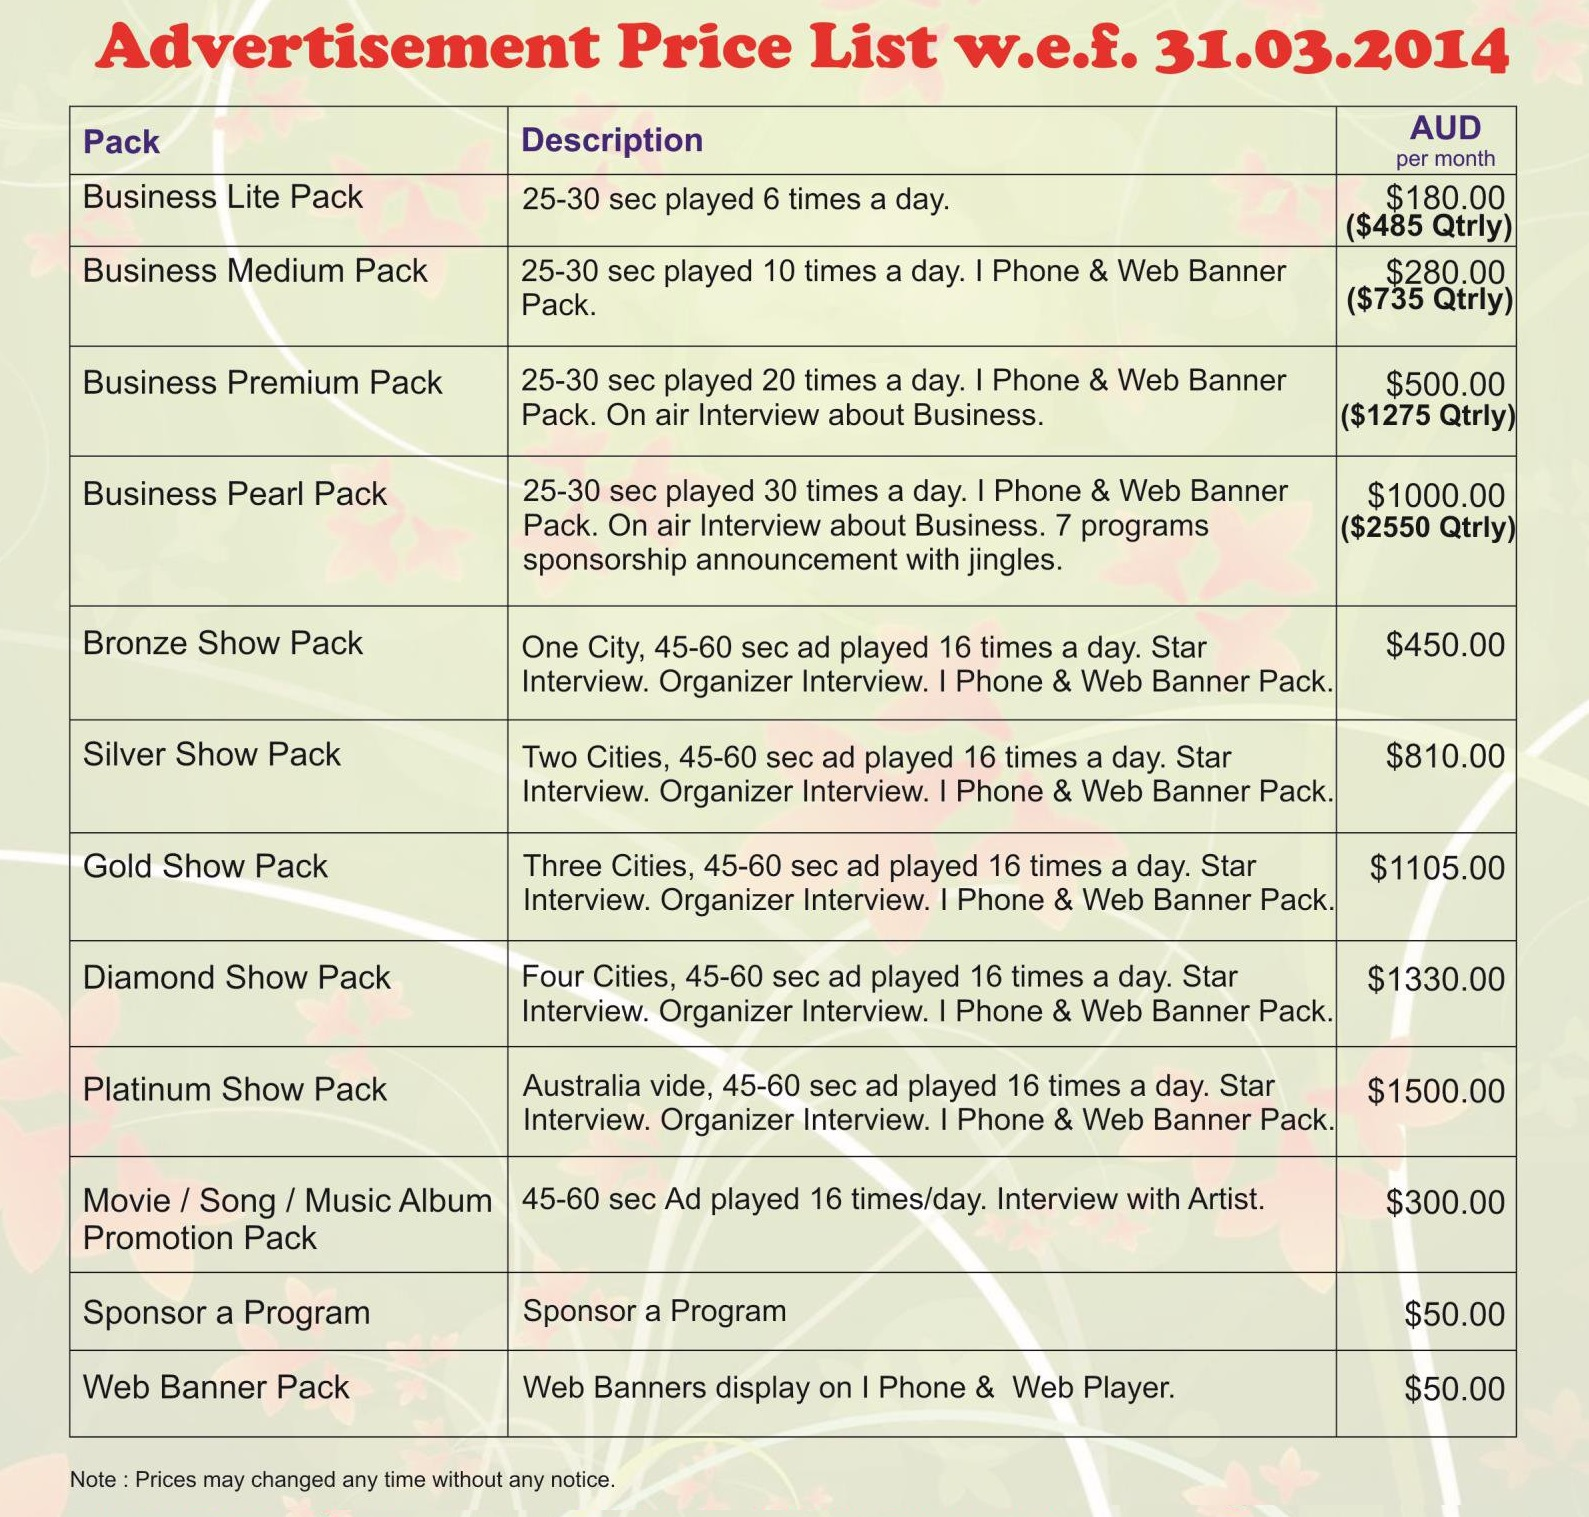 advertisement-price-list